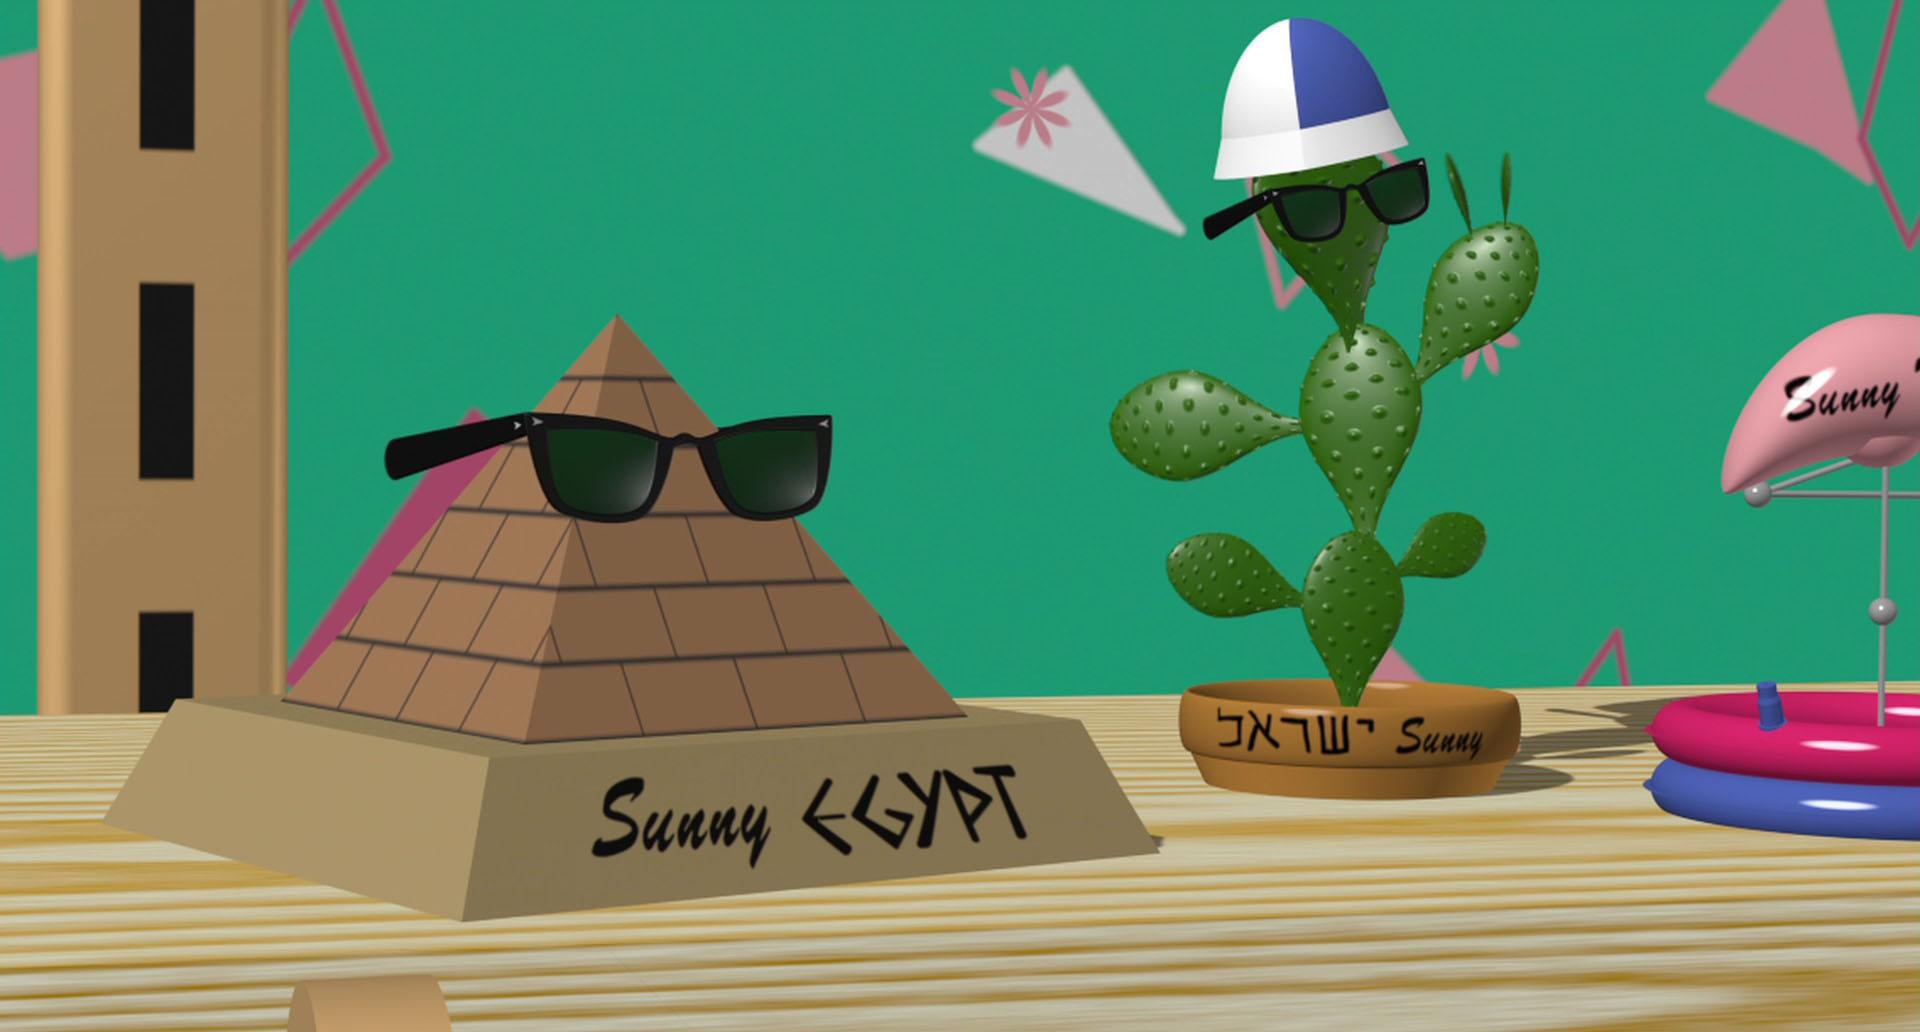 sunny-israel-personnage-knick-knack-01